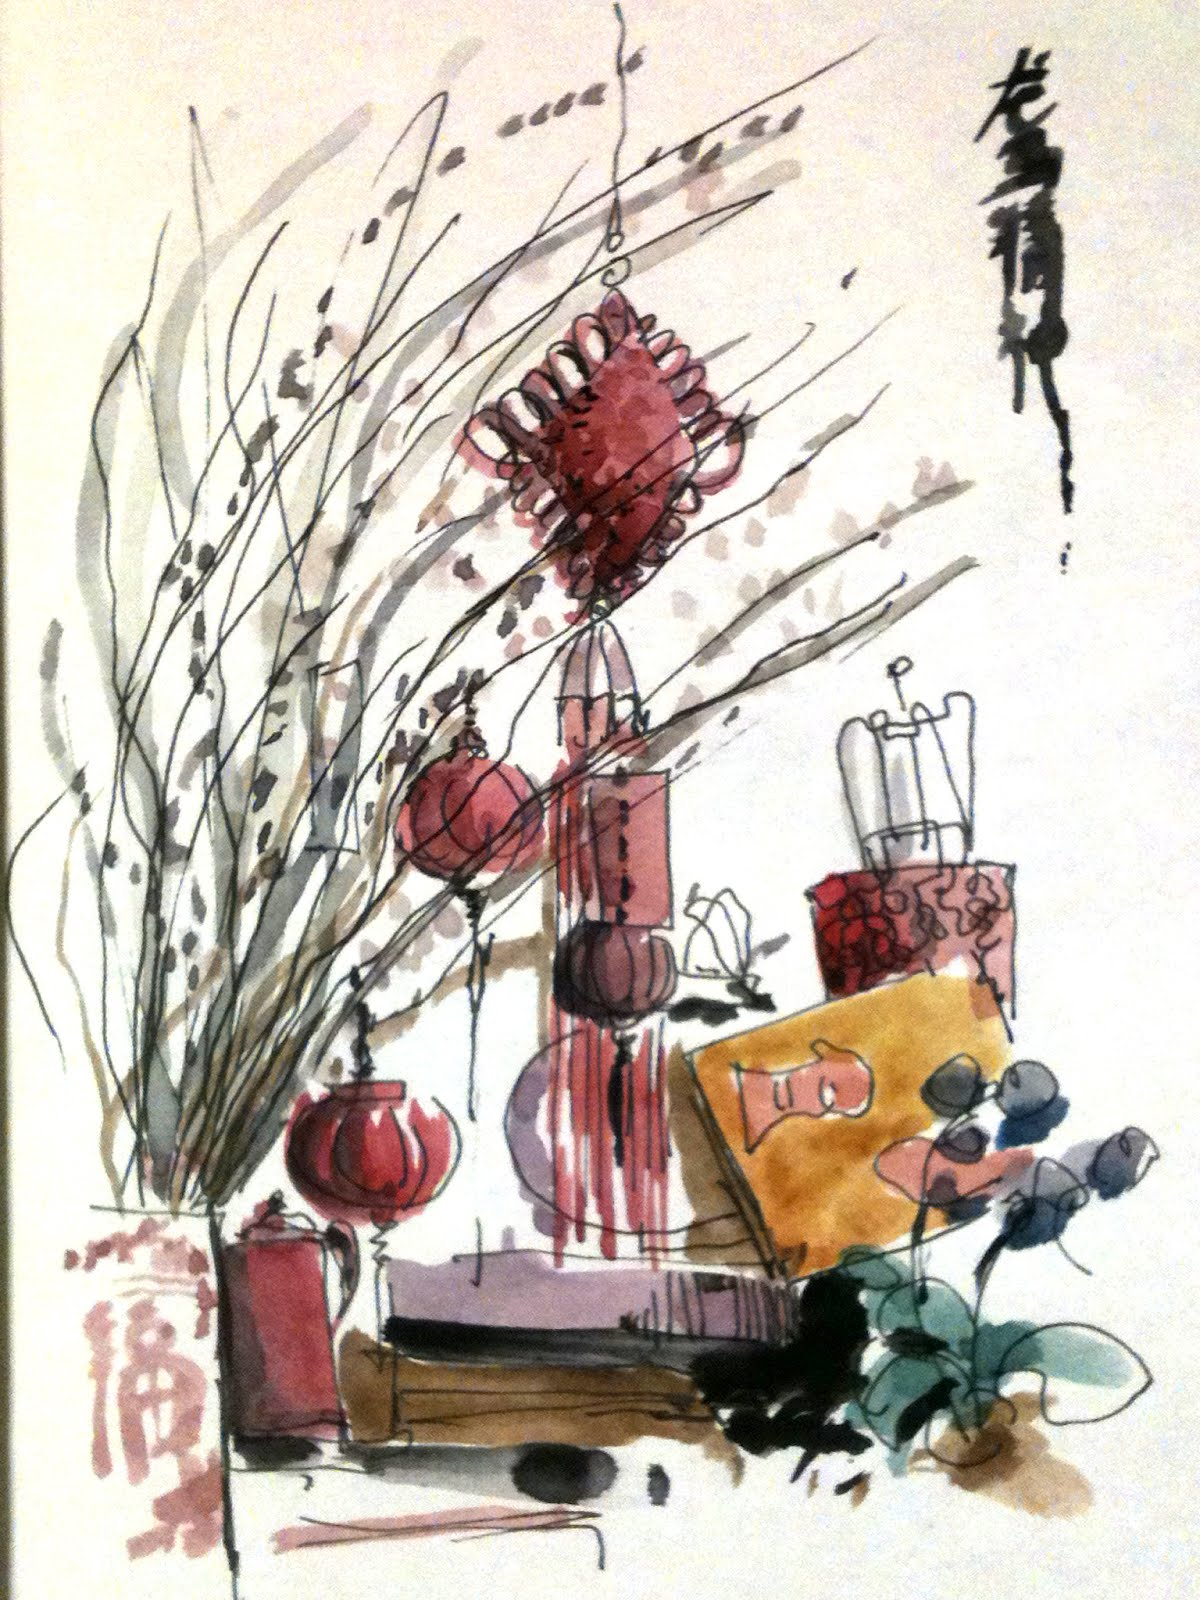 Chinese Lunar New Year decorations | Urban Sketchers